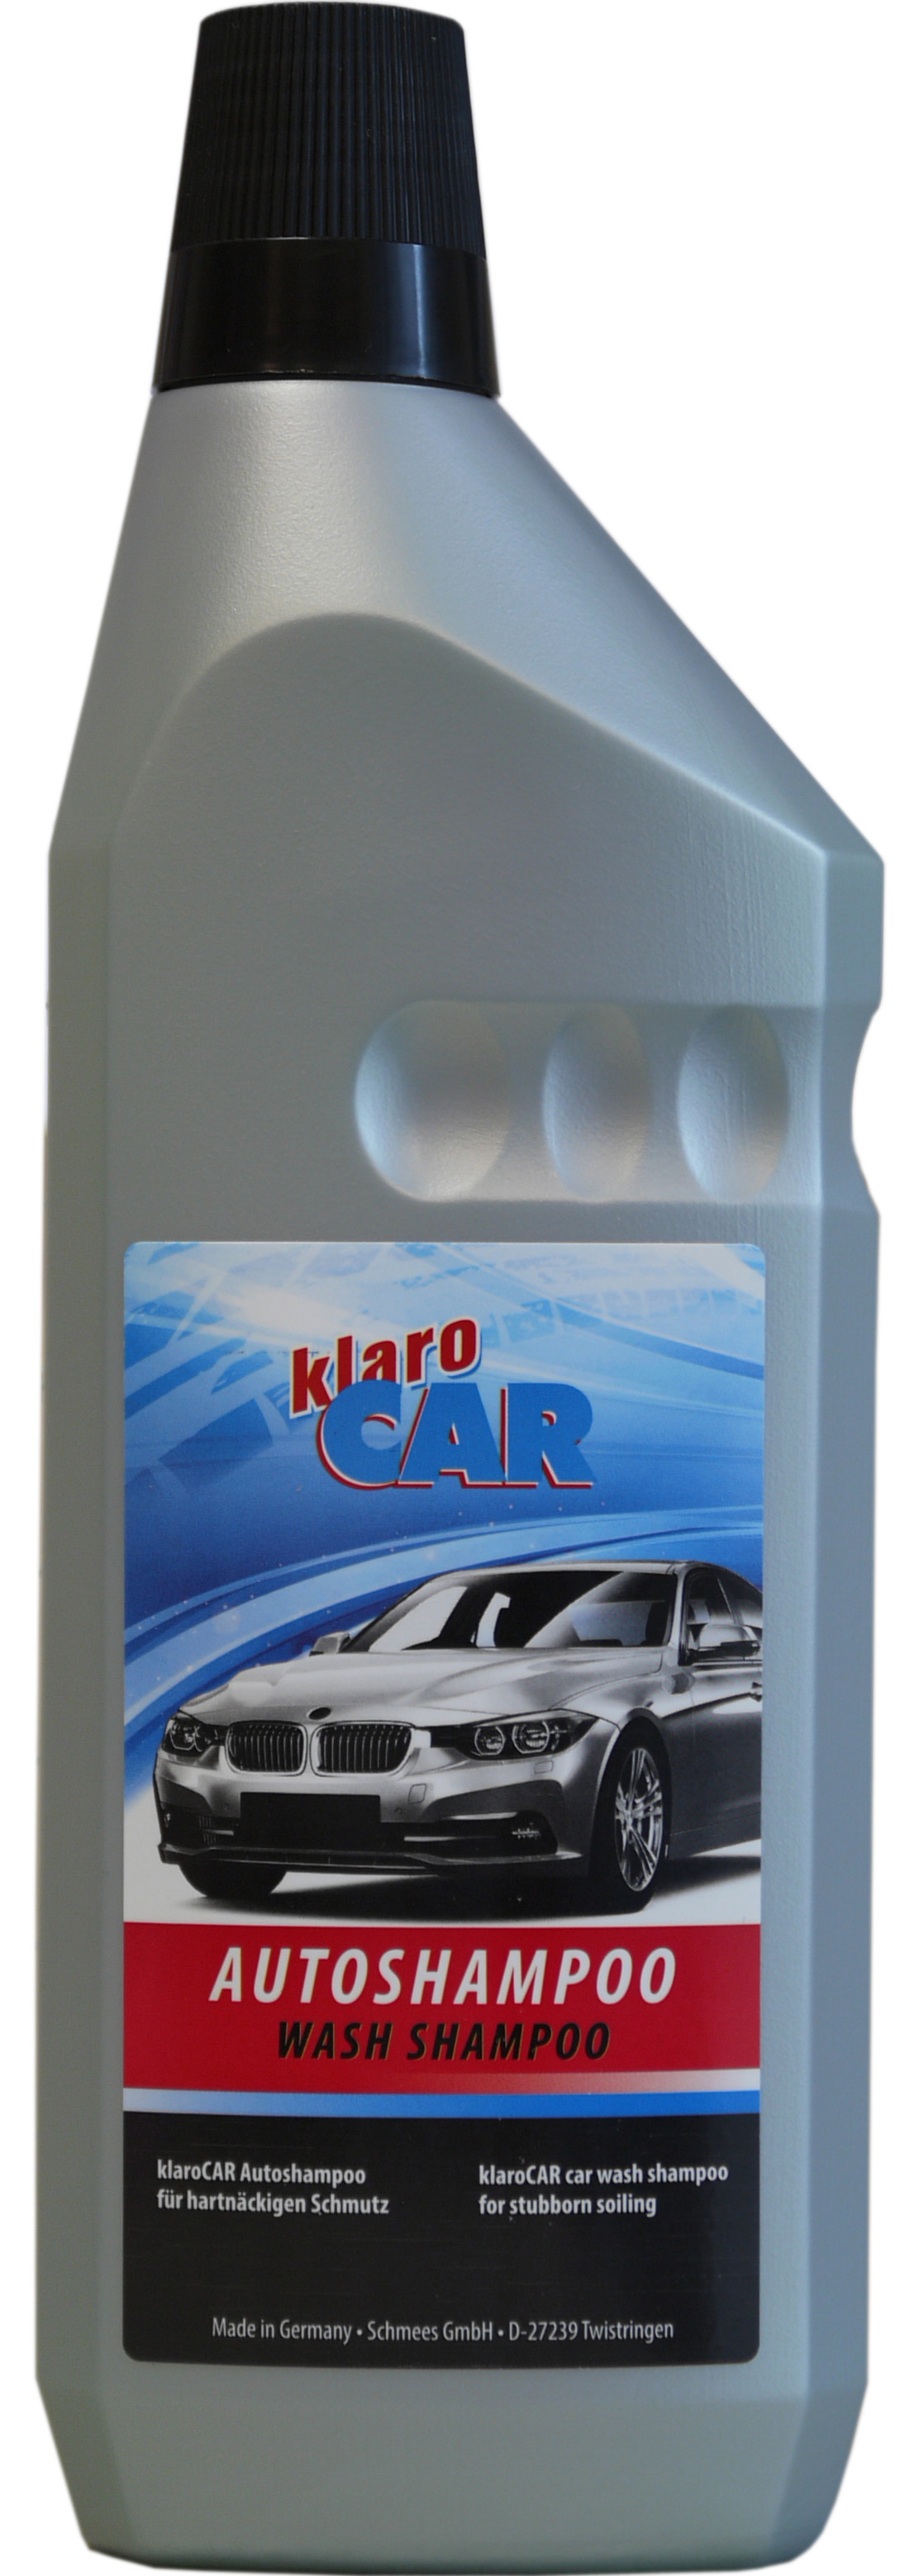 00714 - car shampoo 1000 ml